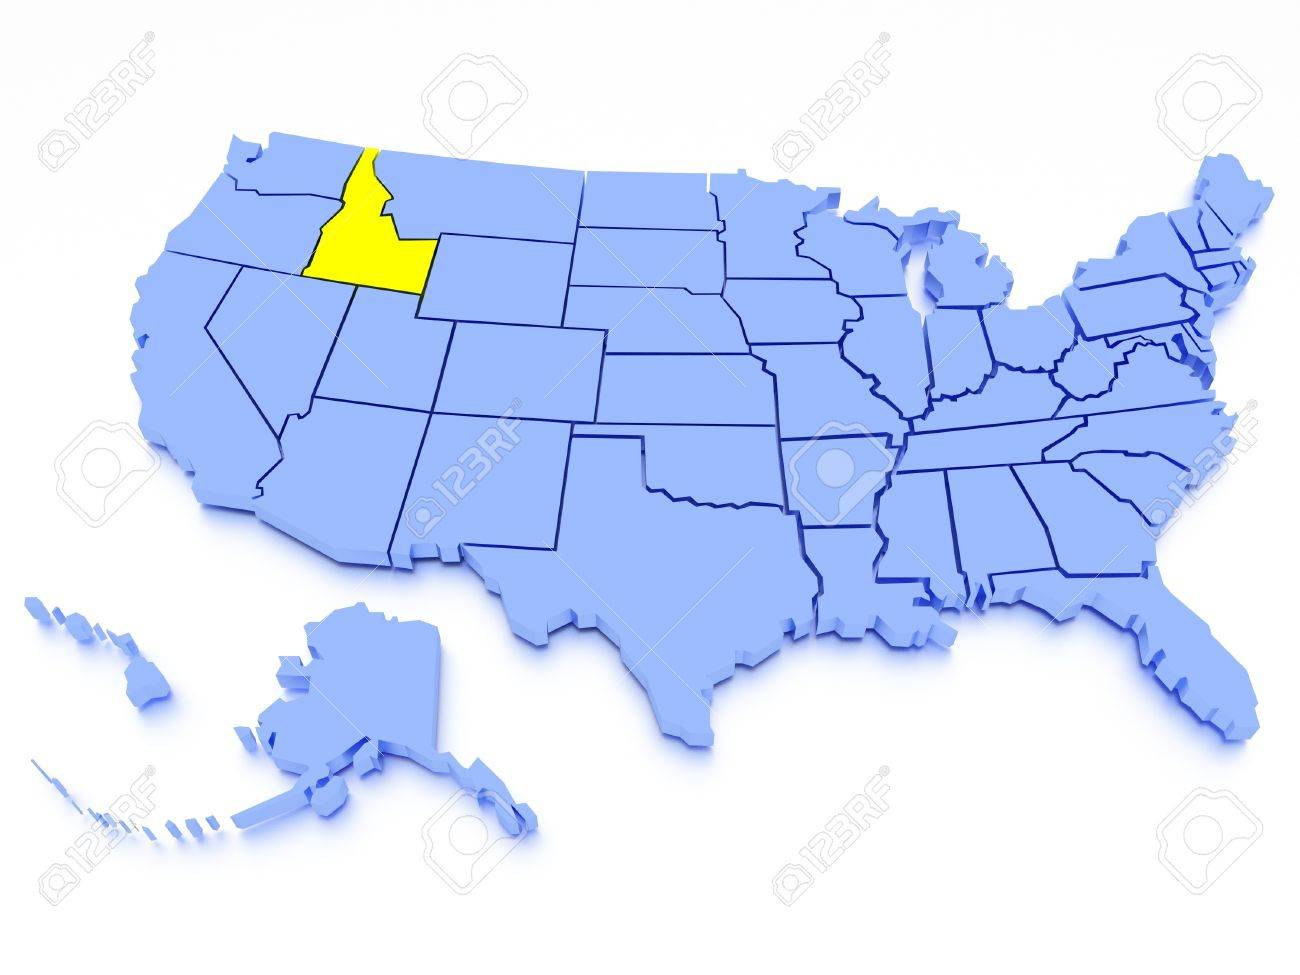 Statistics Maps West Nile Virus CDC FileUnited States - Idaho us map